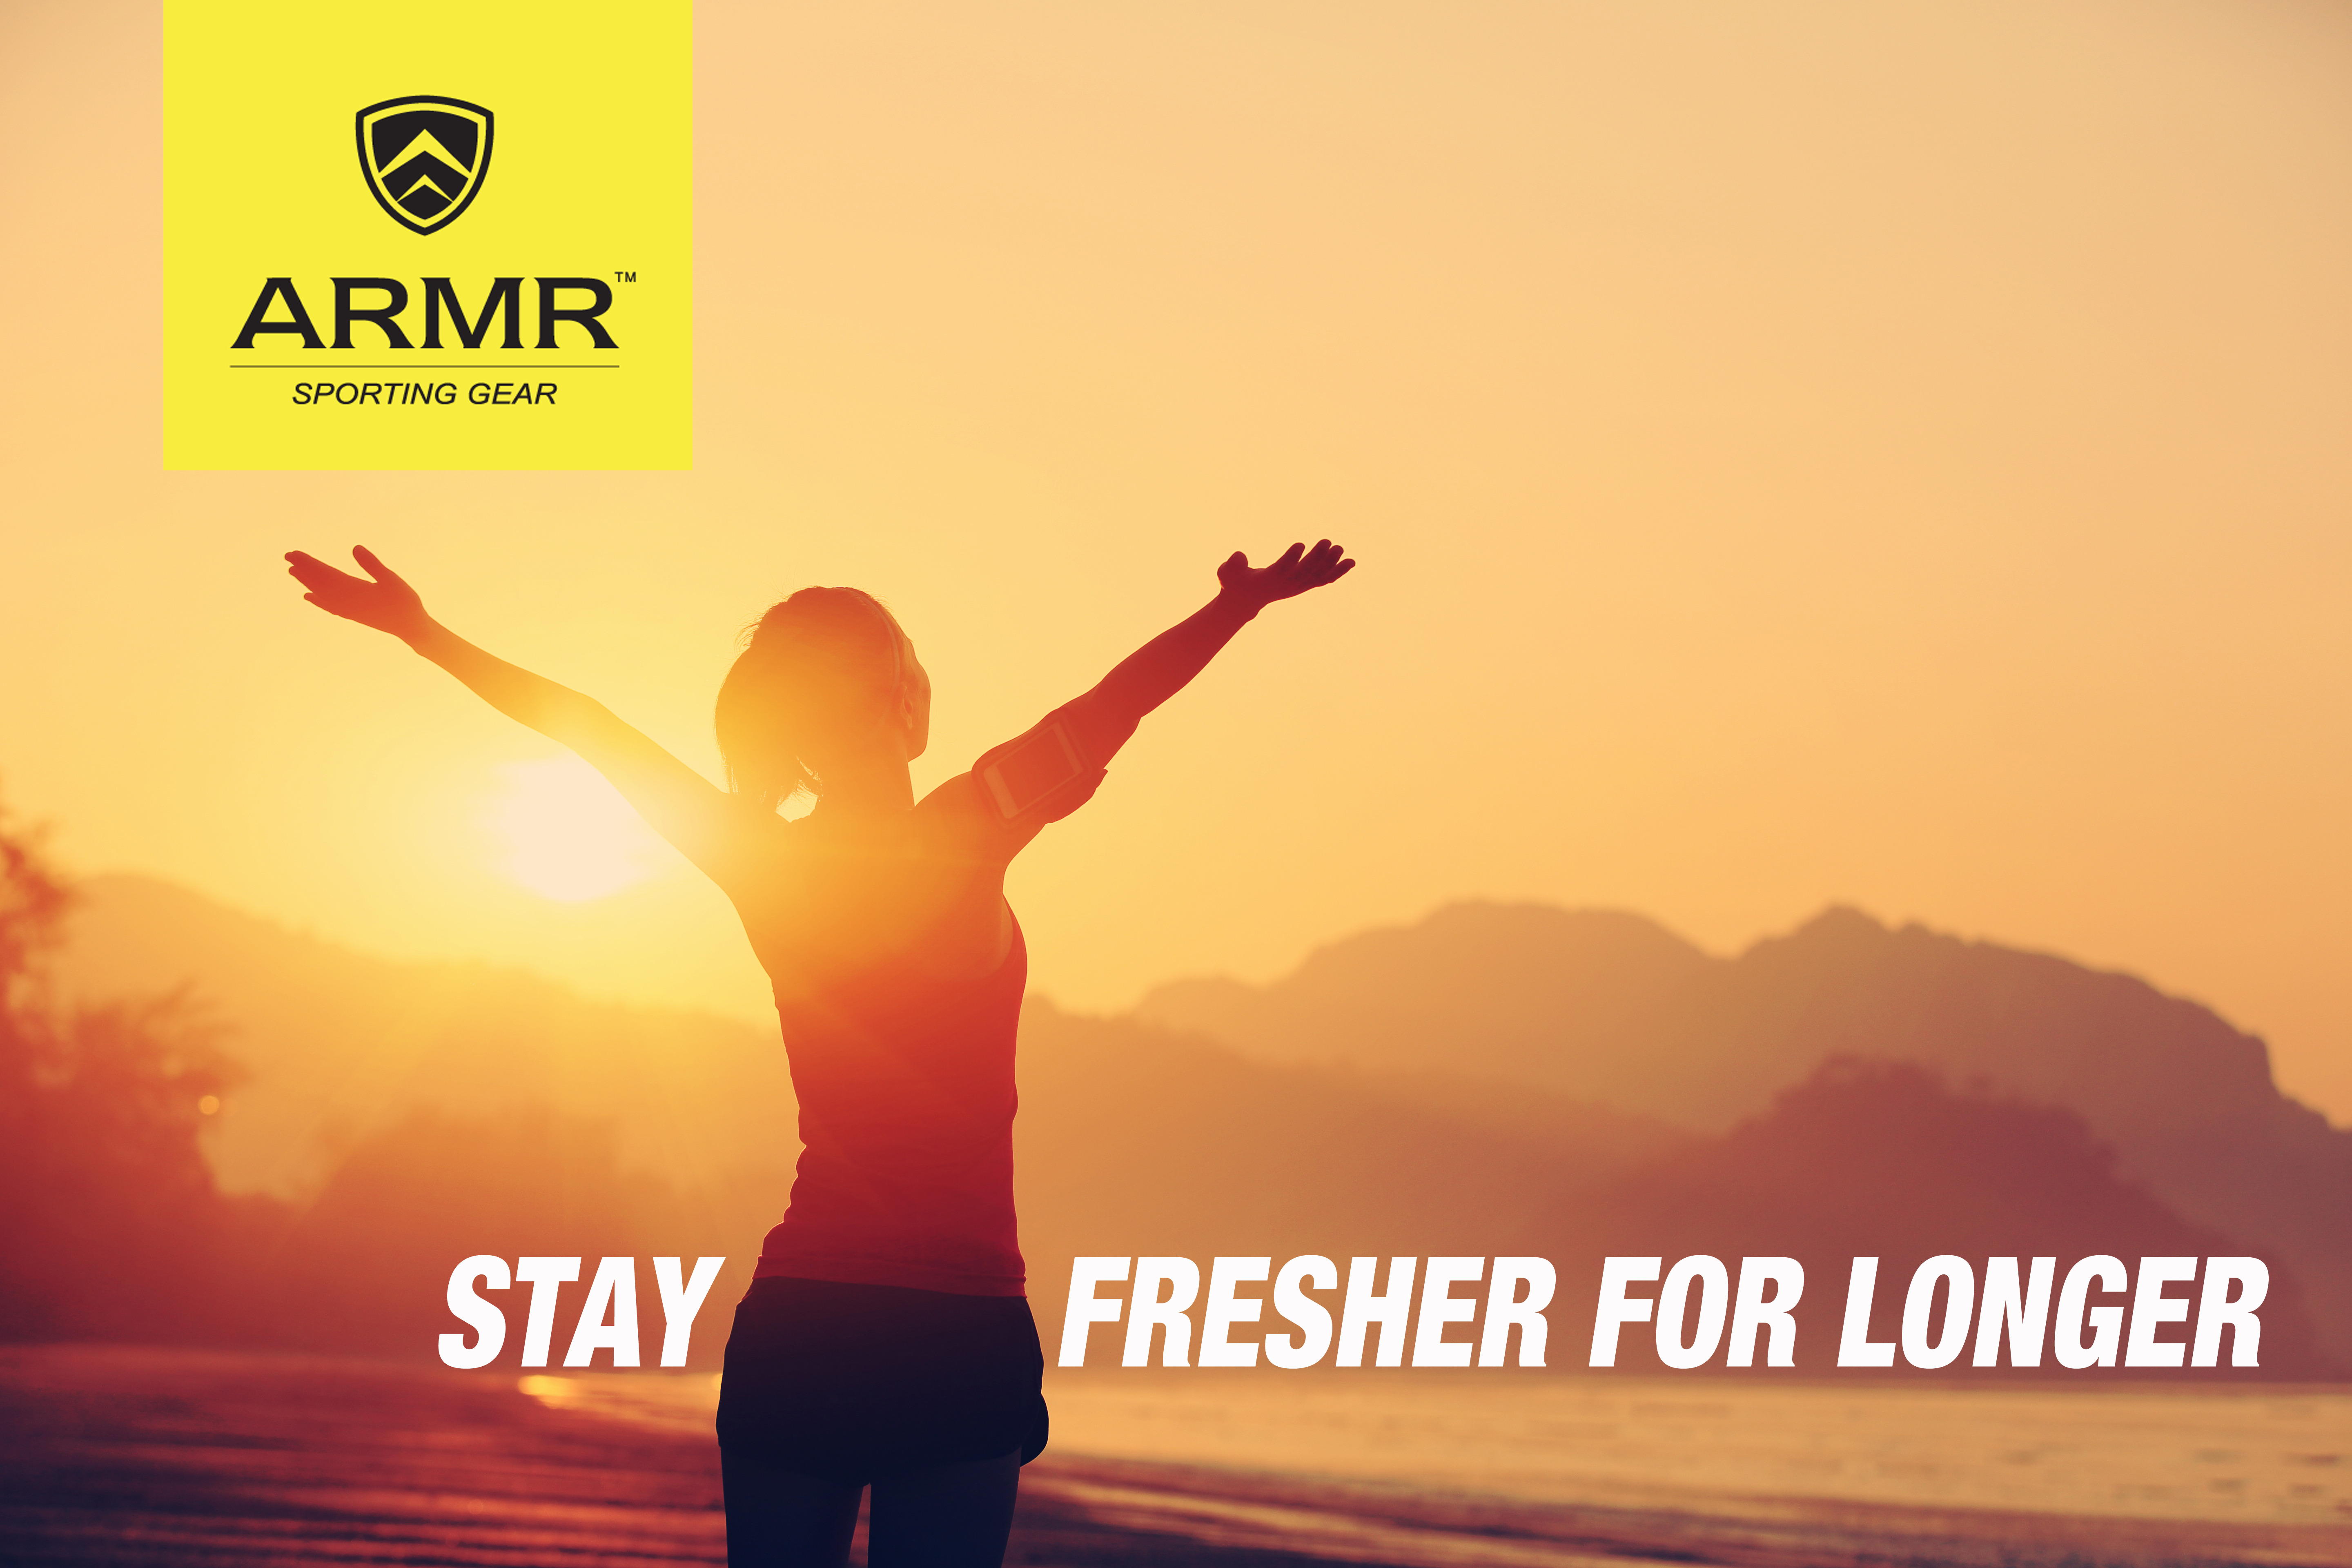 Stay Fresher for Longer with ARMR SILVERTECH